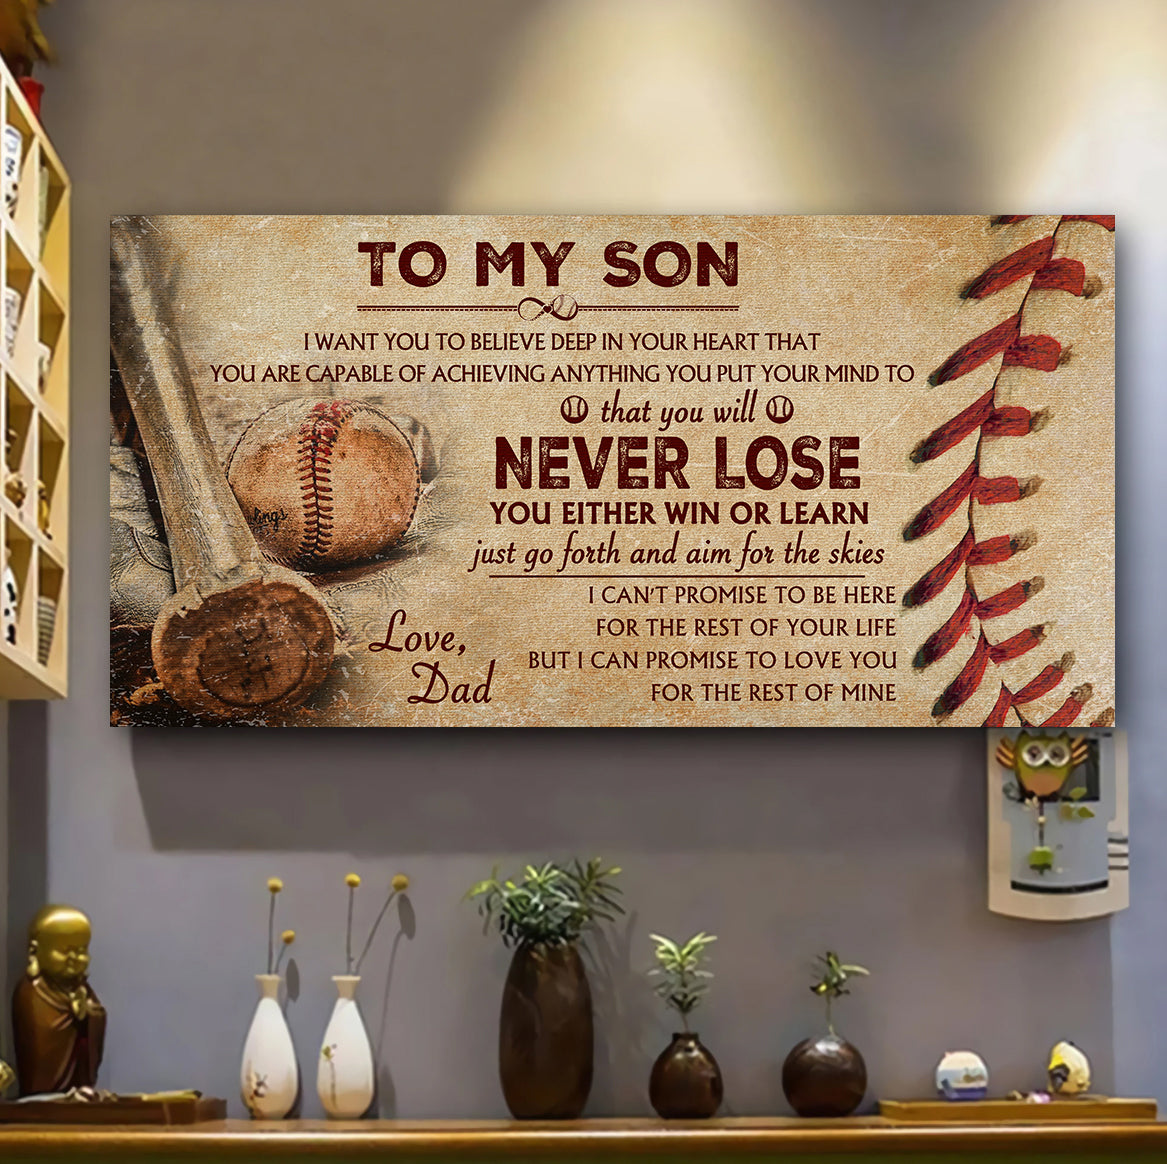 (AQ205) Customizable Baseball Poster Canvas - Dad to son - Never lose -. FREE SHIPPING ON ORDERS OVER $75